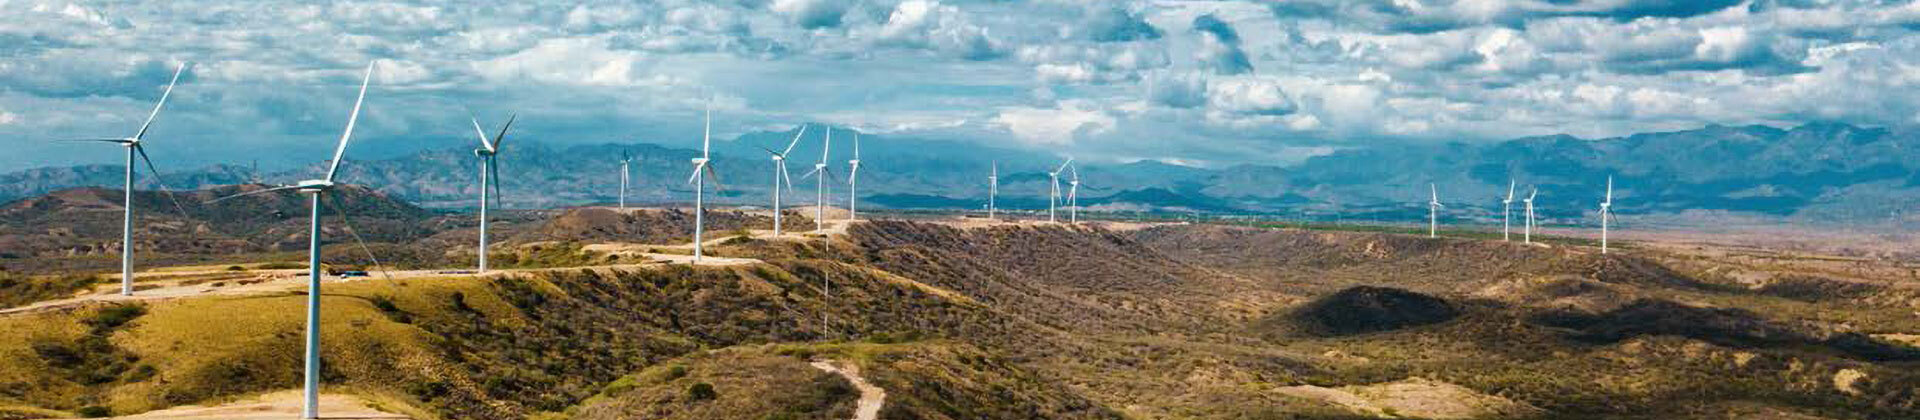 path-to-100-renewables-for-dominican-republic